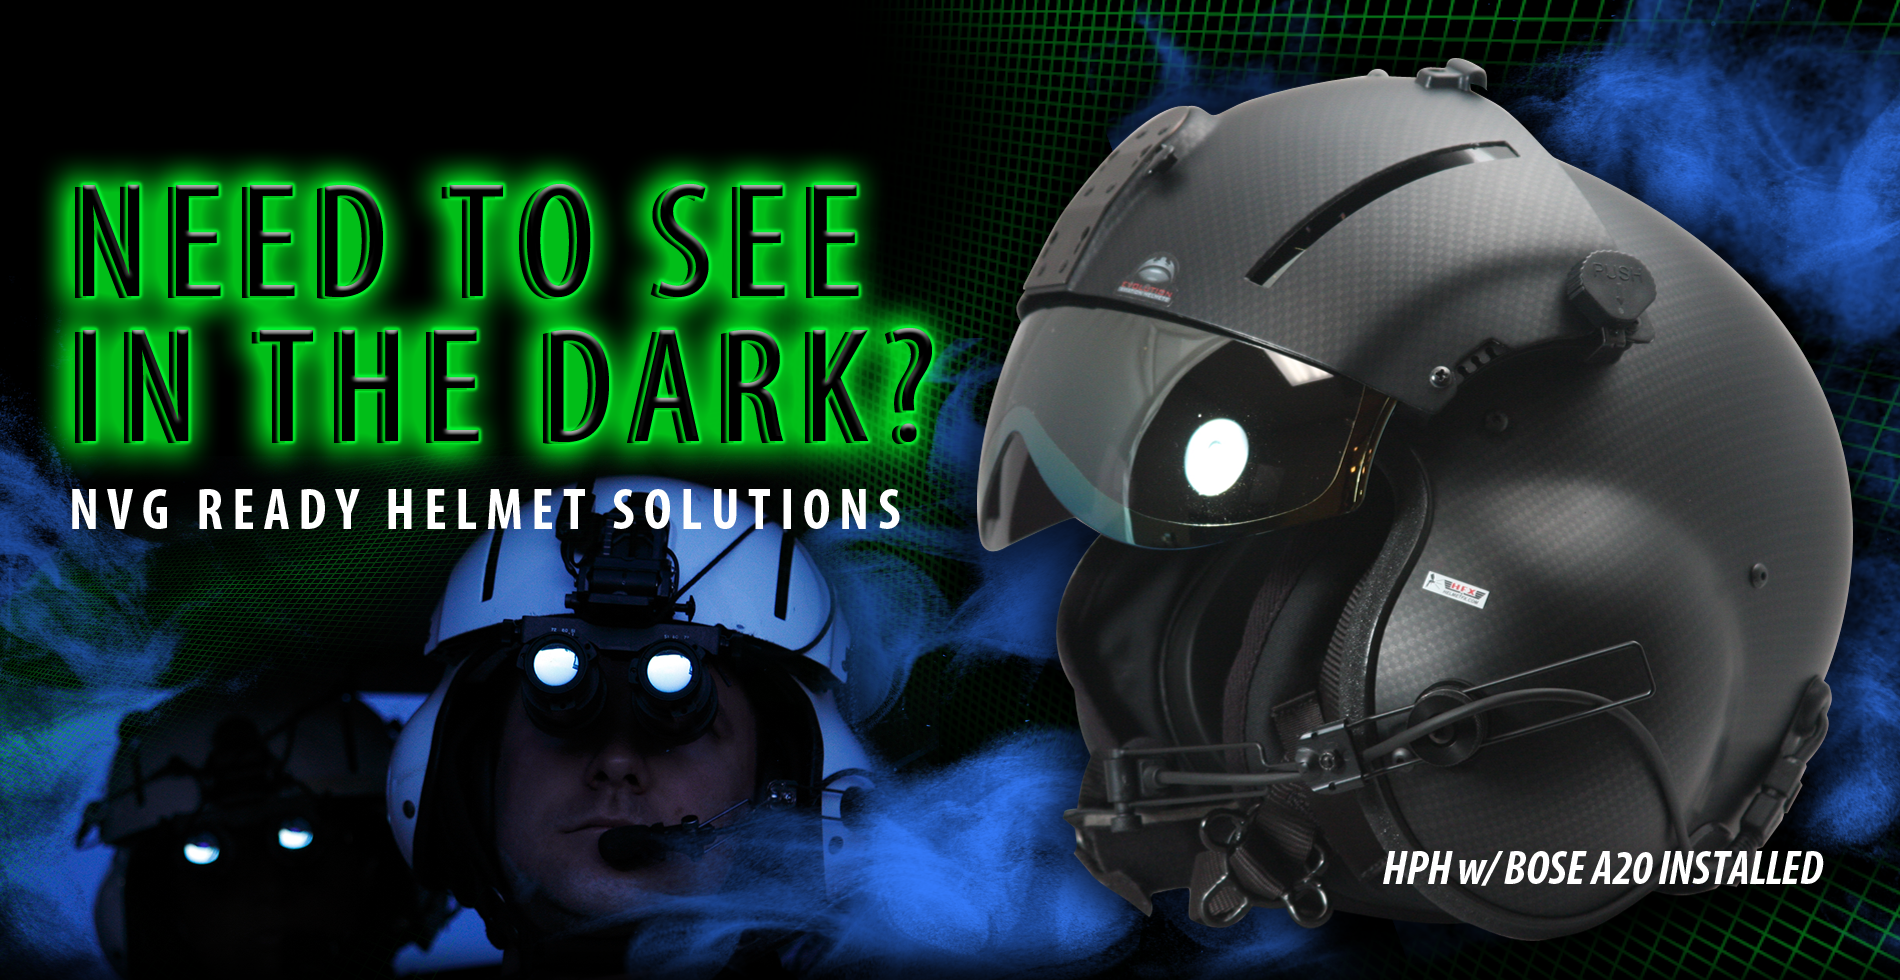 Helicopter Helmets | Helicopter Helmet Sales and Repairs